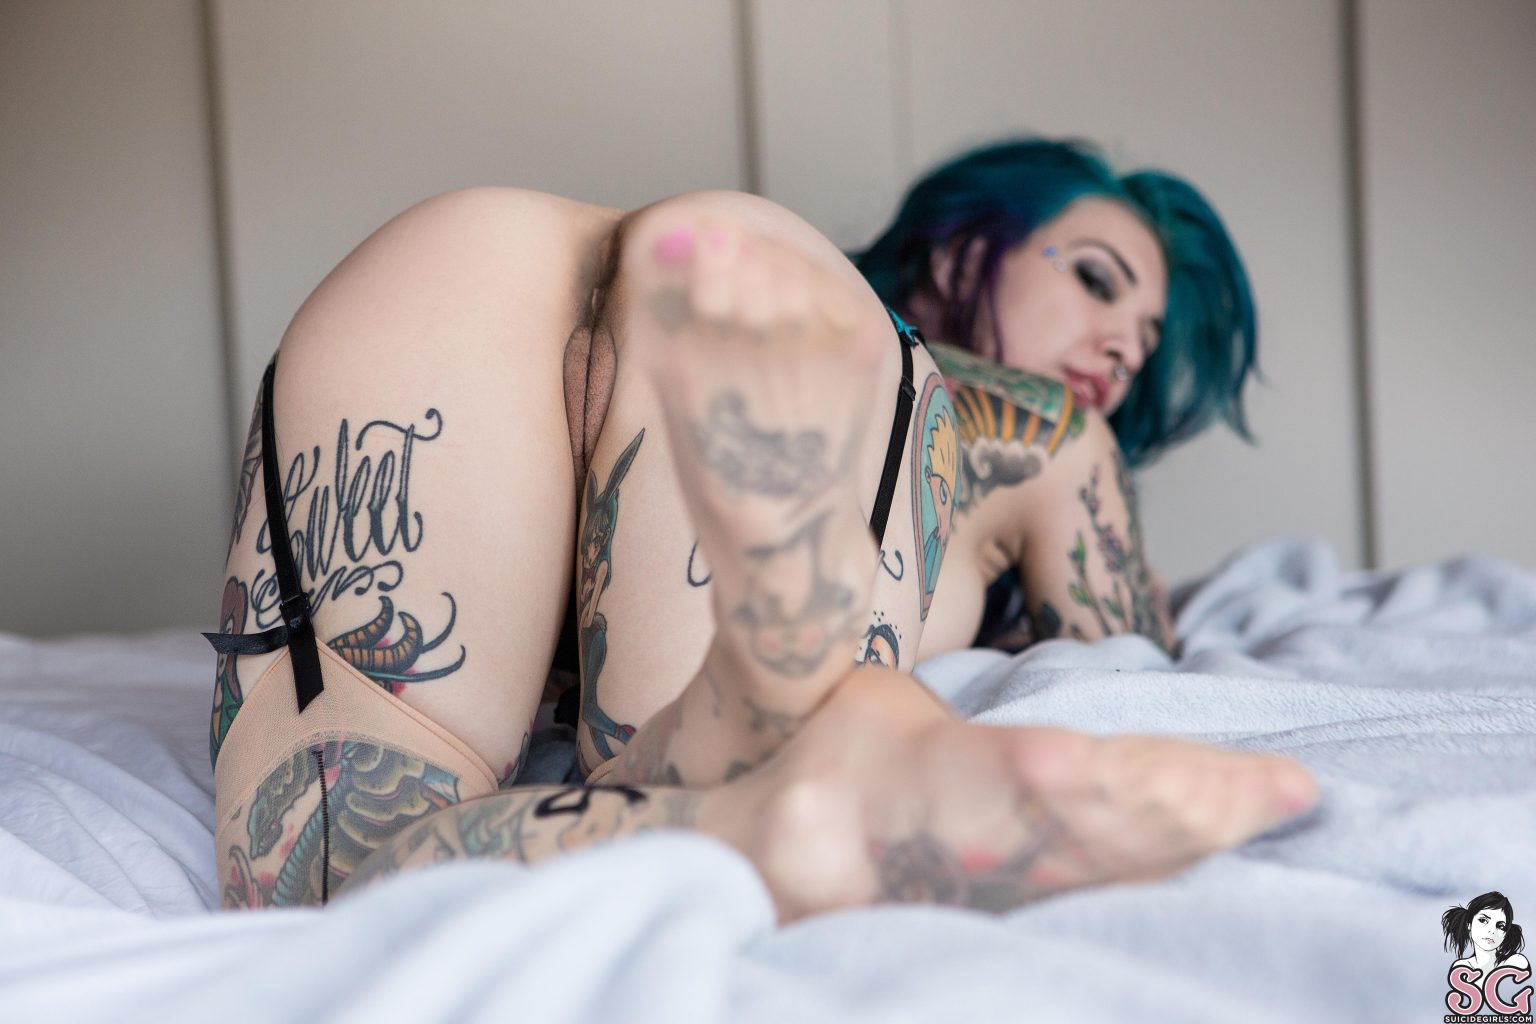 neptuneexplainsitall shows of beautiful ass up as neptune suicide